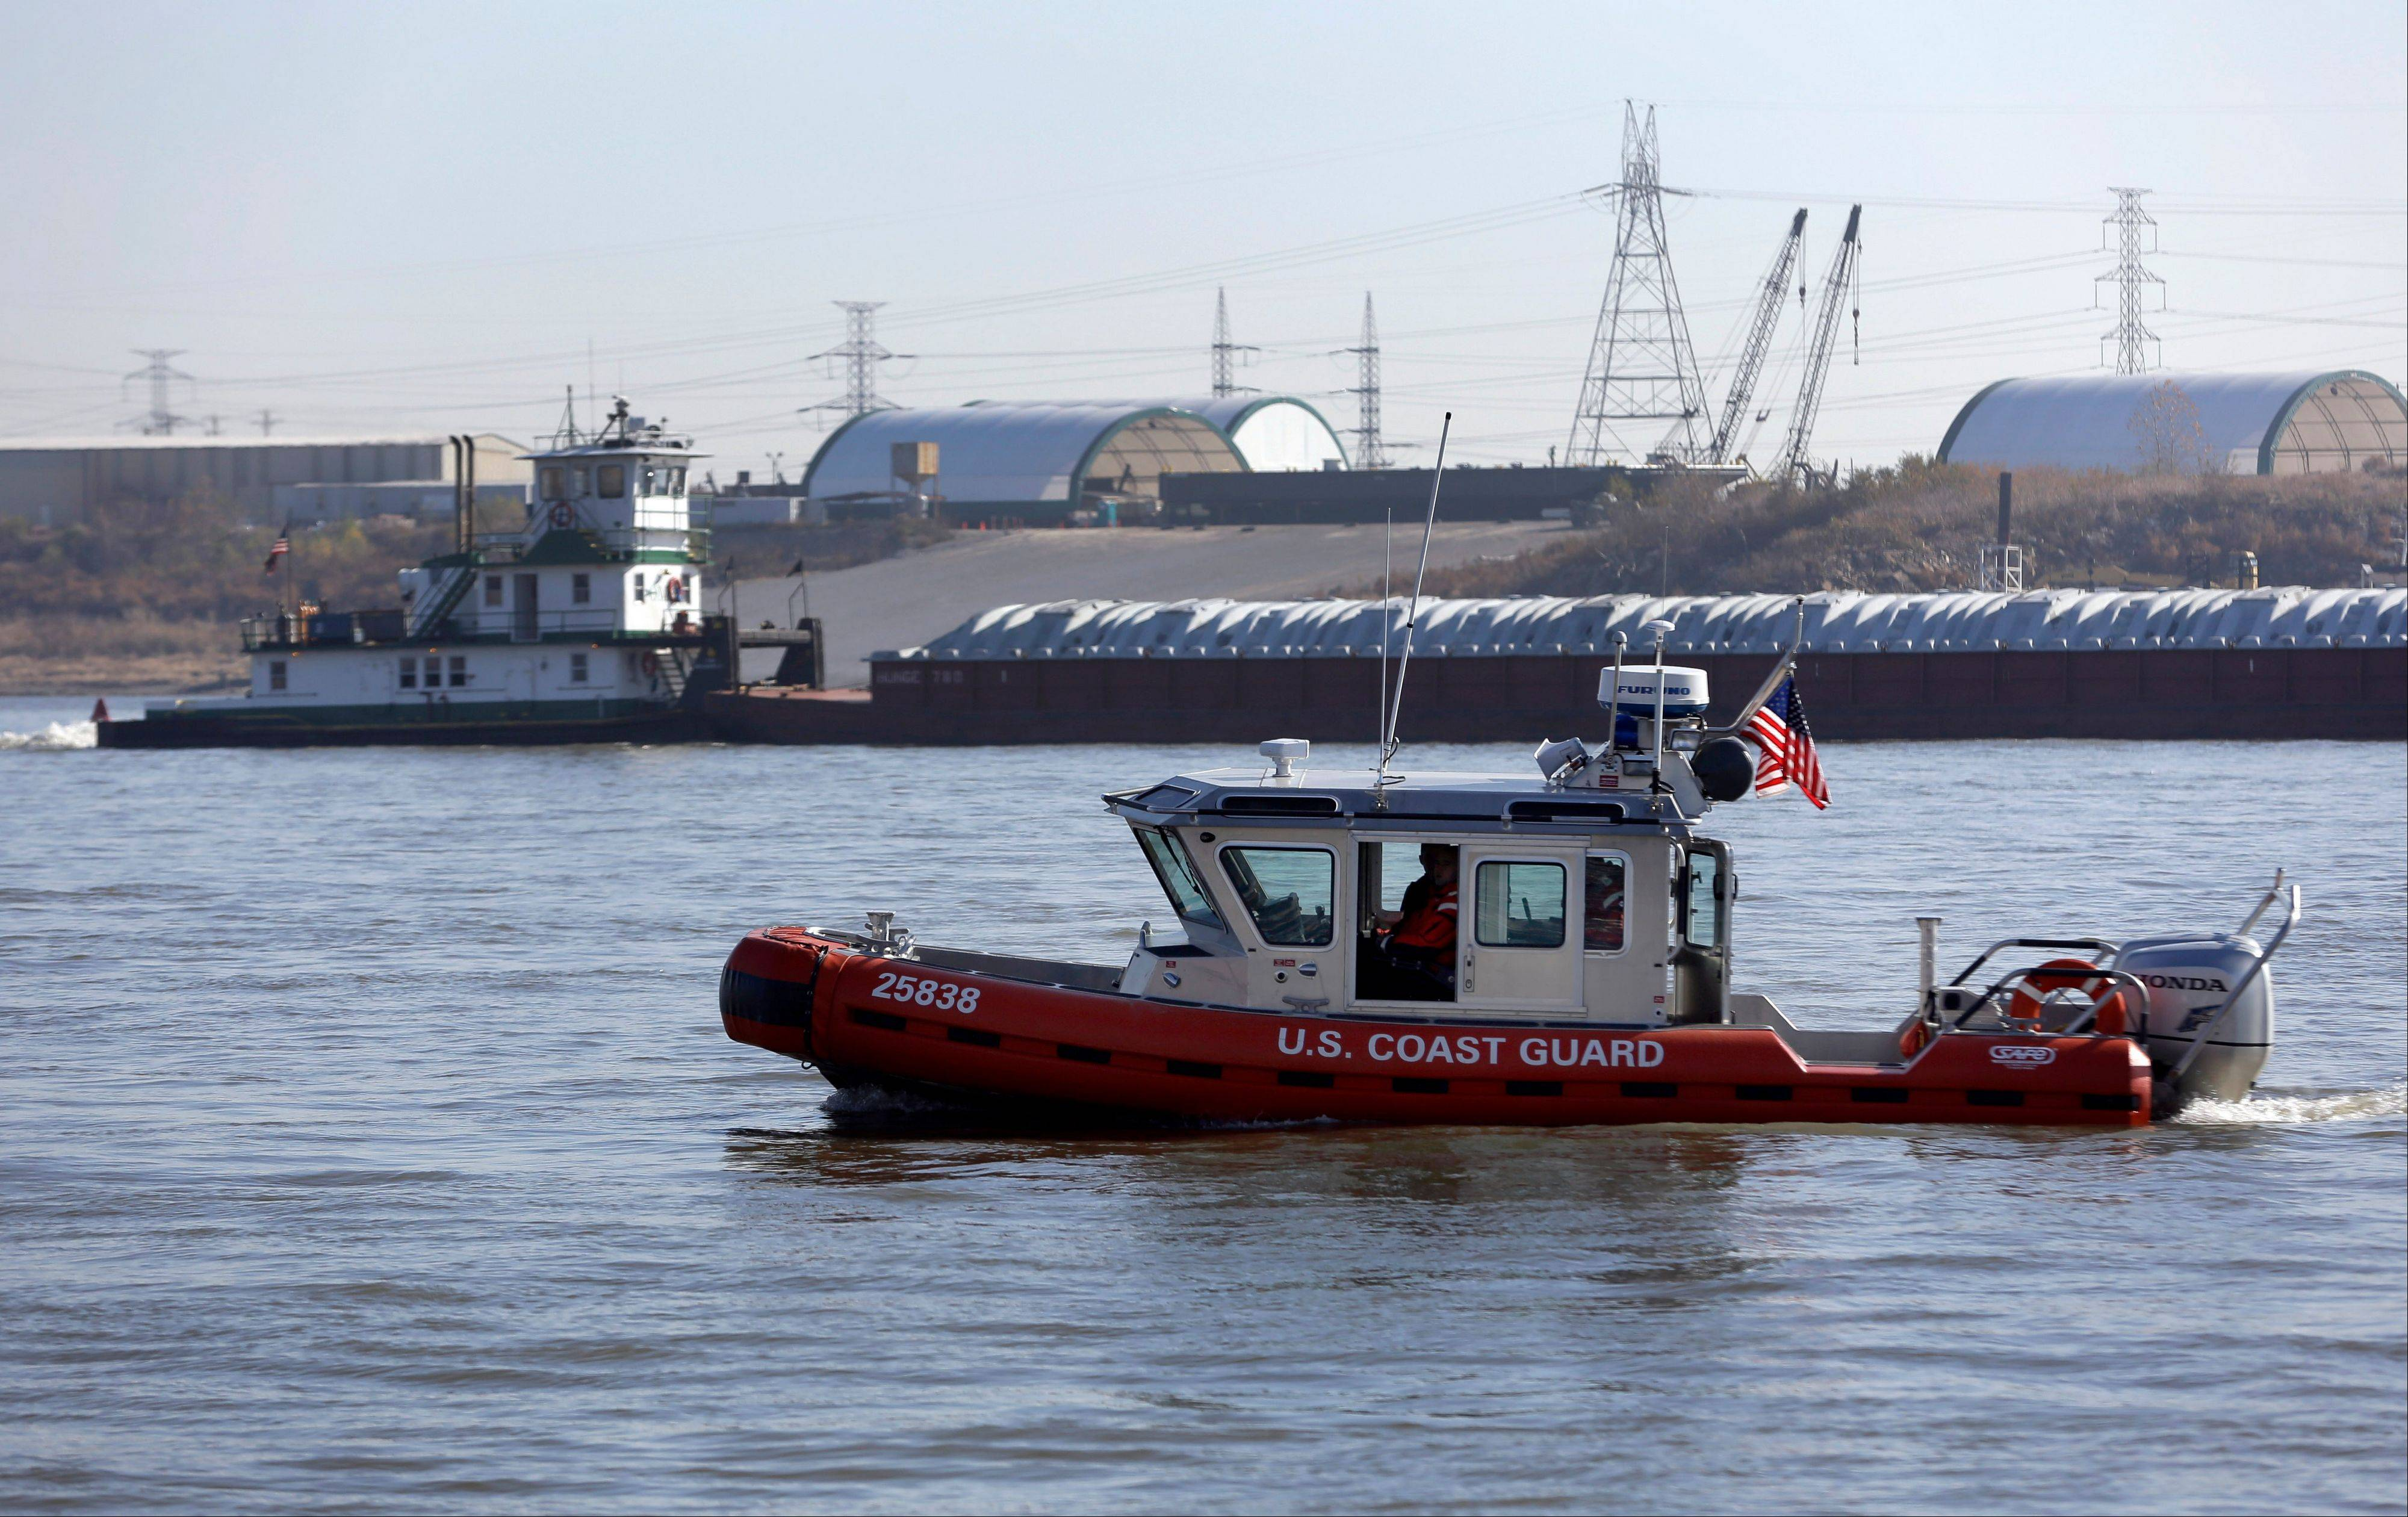 Associated Press A Coast Guard boat patrols in the foreground as a barge makes its way down the Mississippi River Friday in St. Louis.